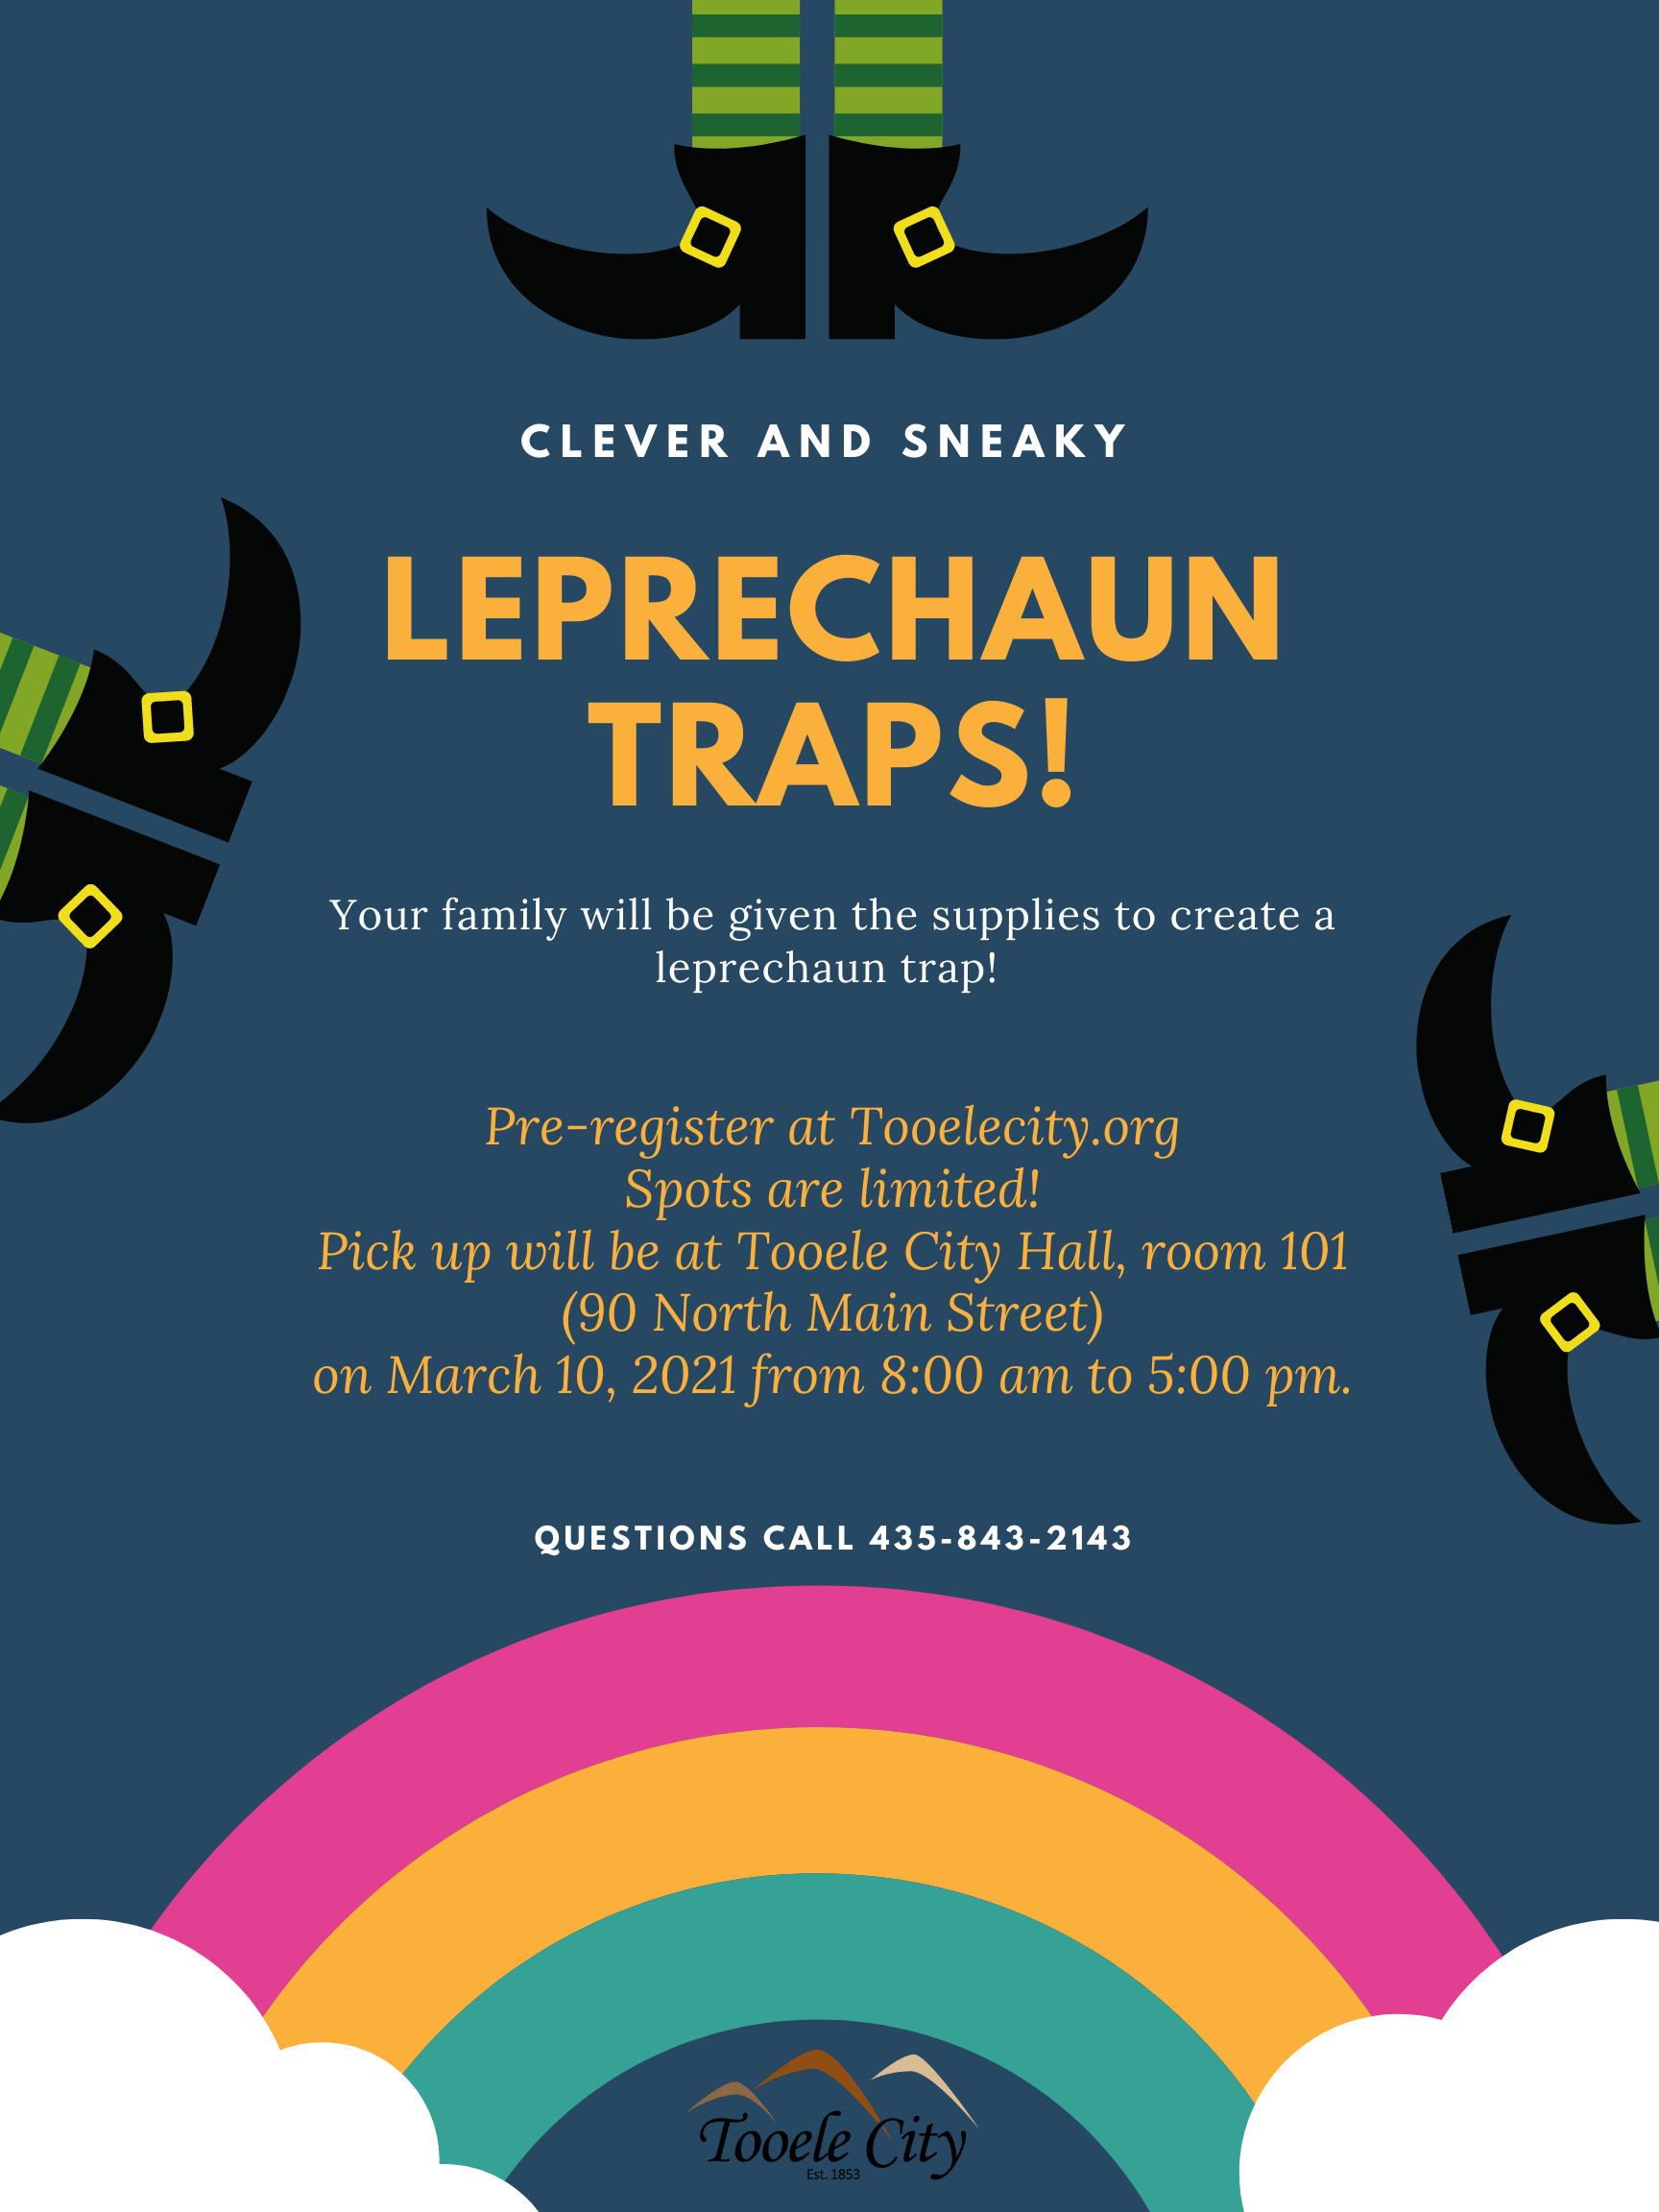 Leprechaun Traps! A Free Family Activity!